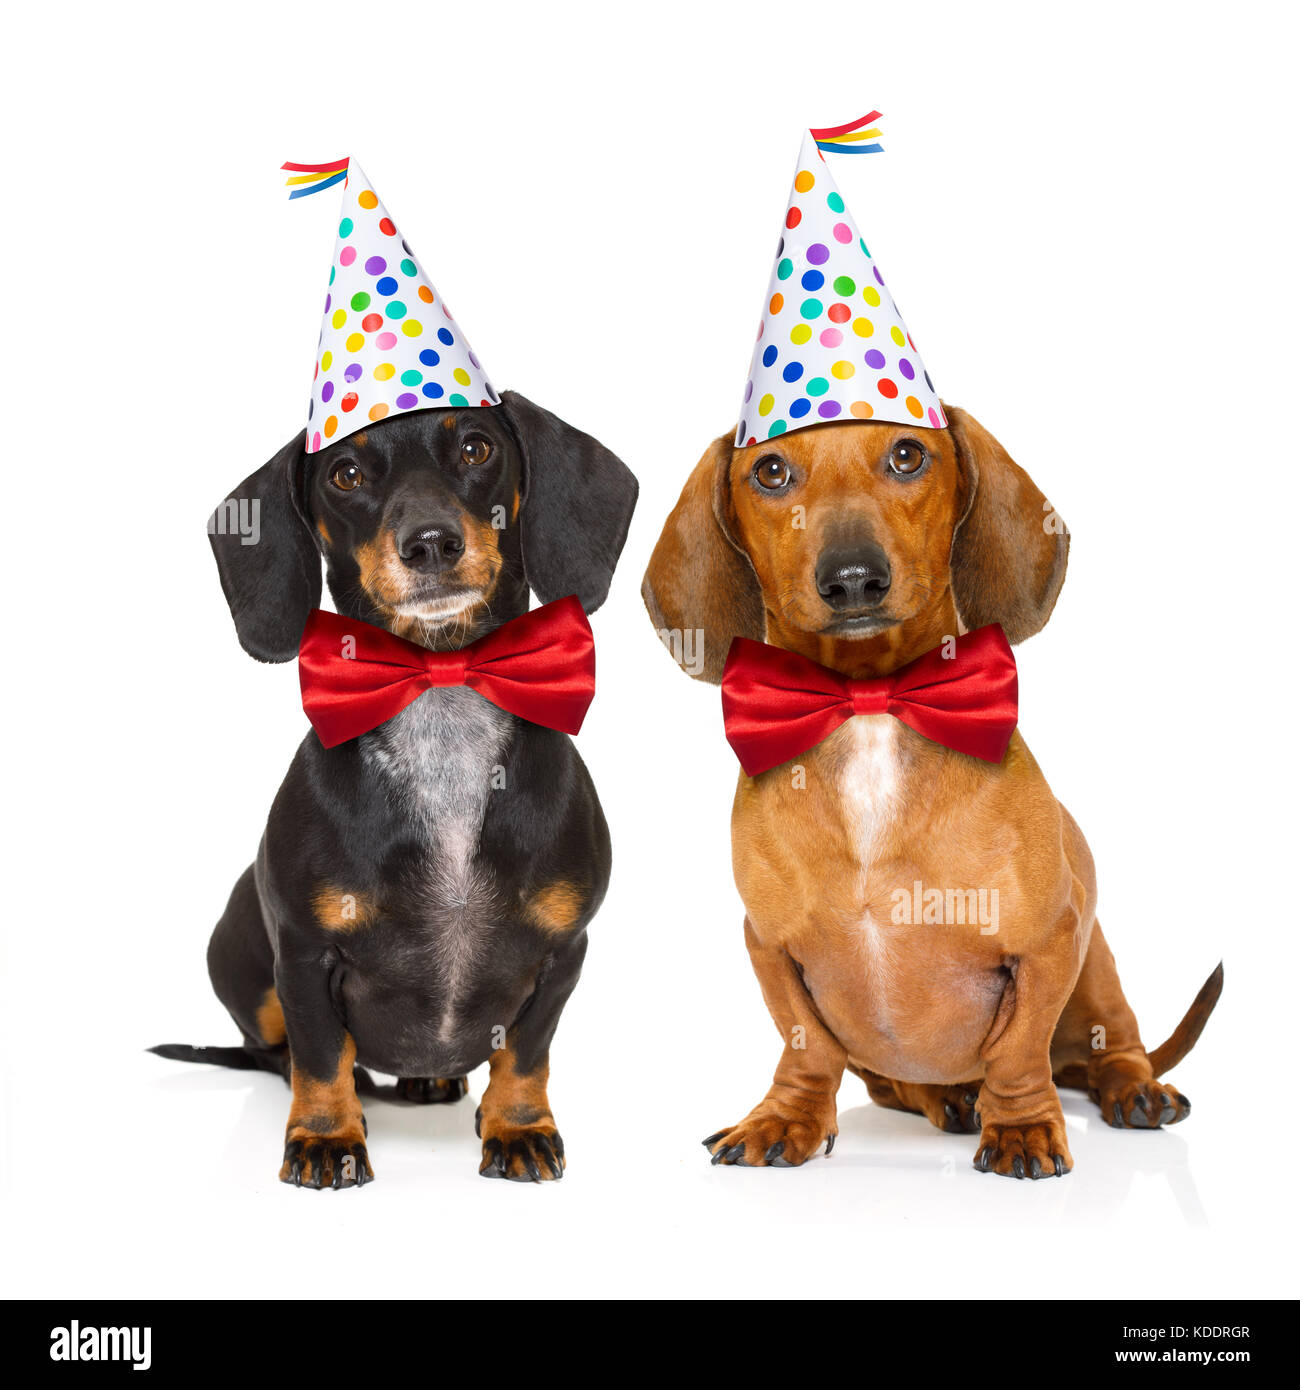 Couple Of Two Dachshund Or Sausage Dogs Hungry For A Happy Birthday Cake With Candles Wearing Red Tie And Party Hat Isolated On White Backgroun